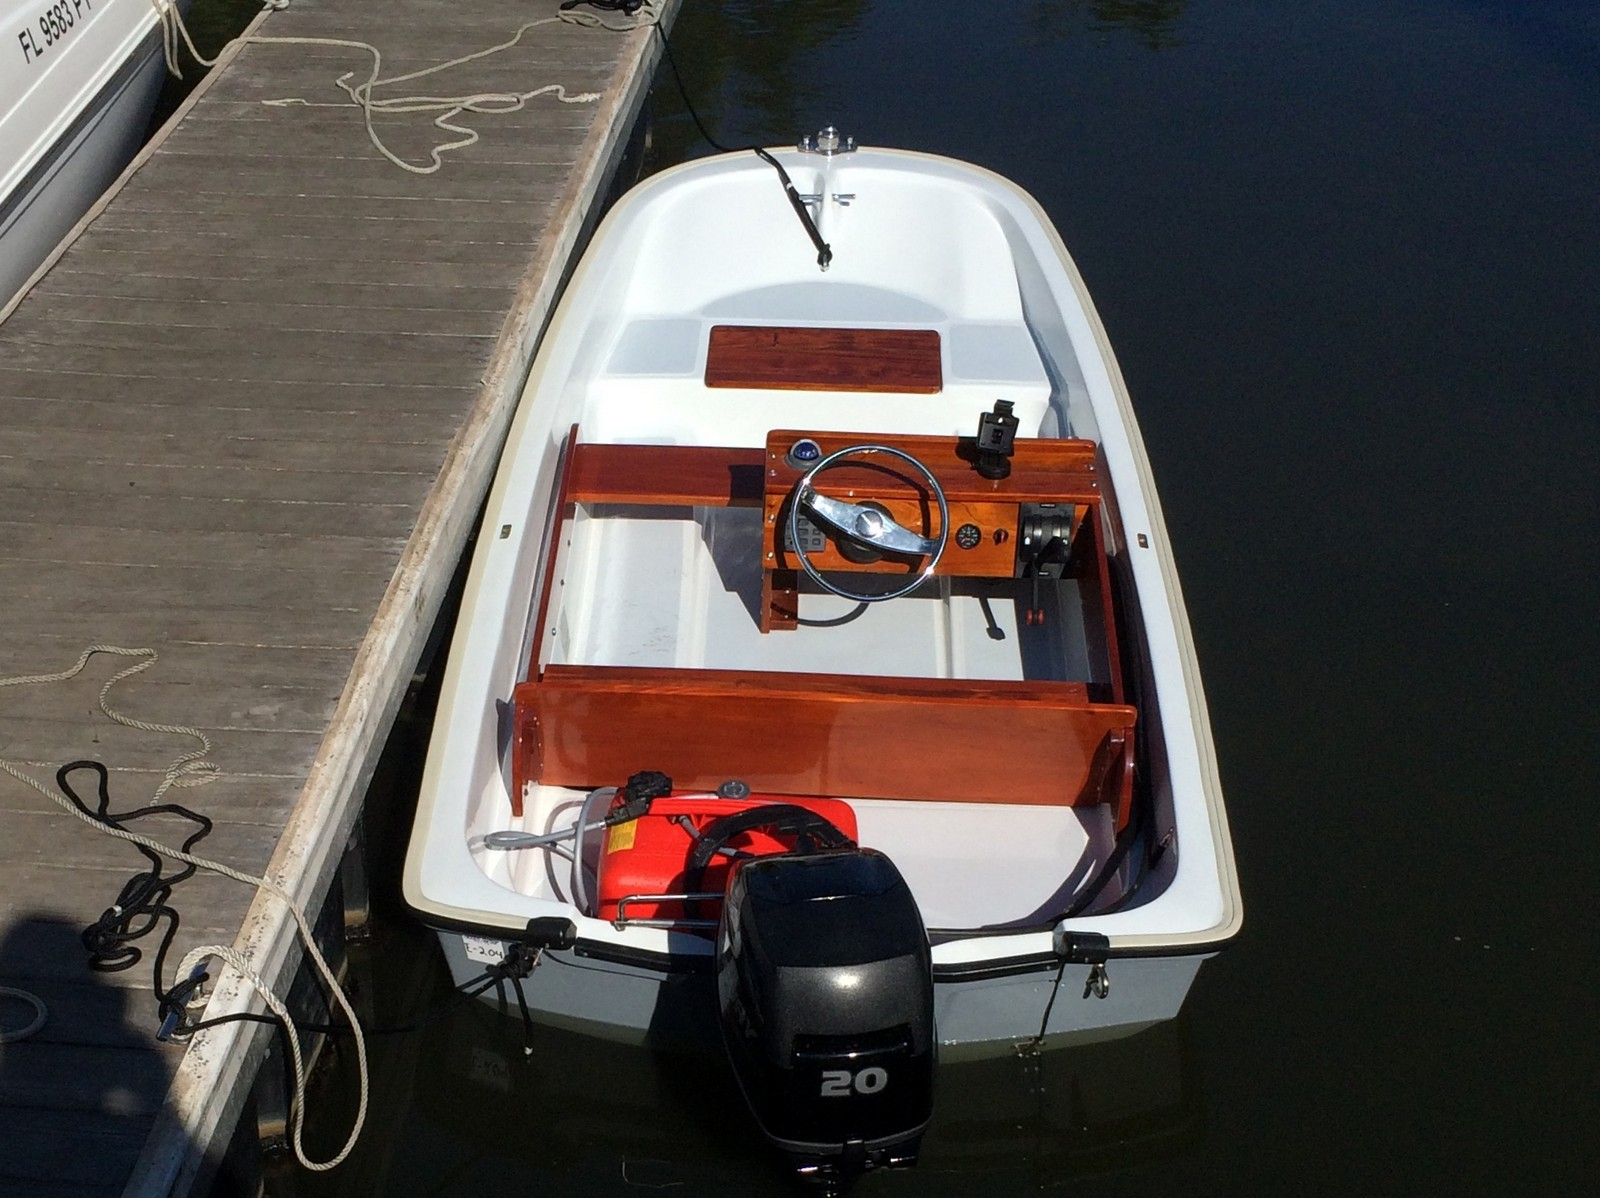 hight resolution of despite its factory new appearance this boat is not i don t know it s exact age but it s a well restored super sport model built from 1984 to 1994